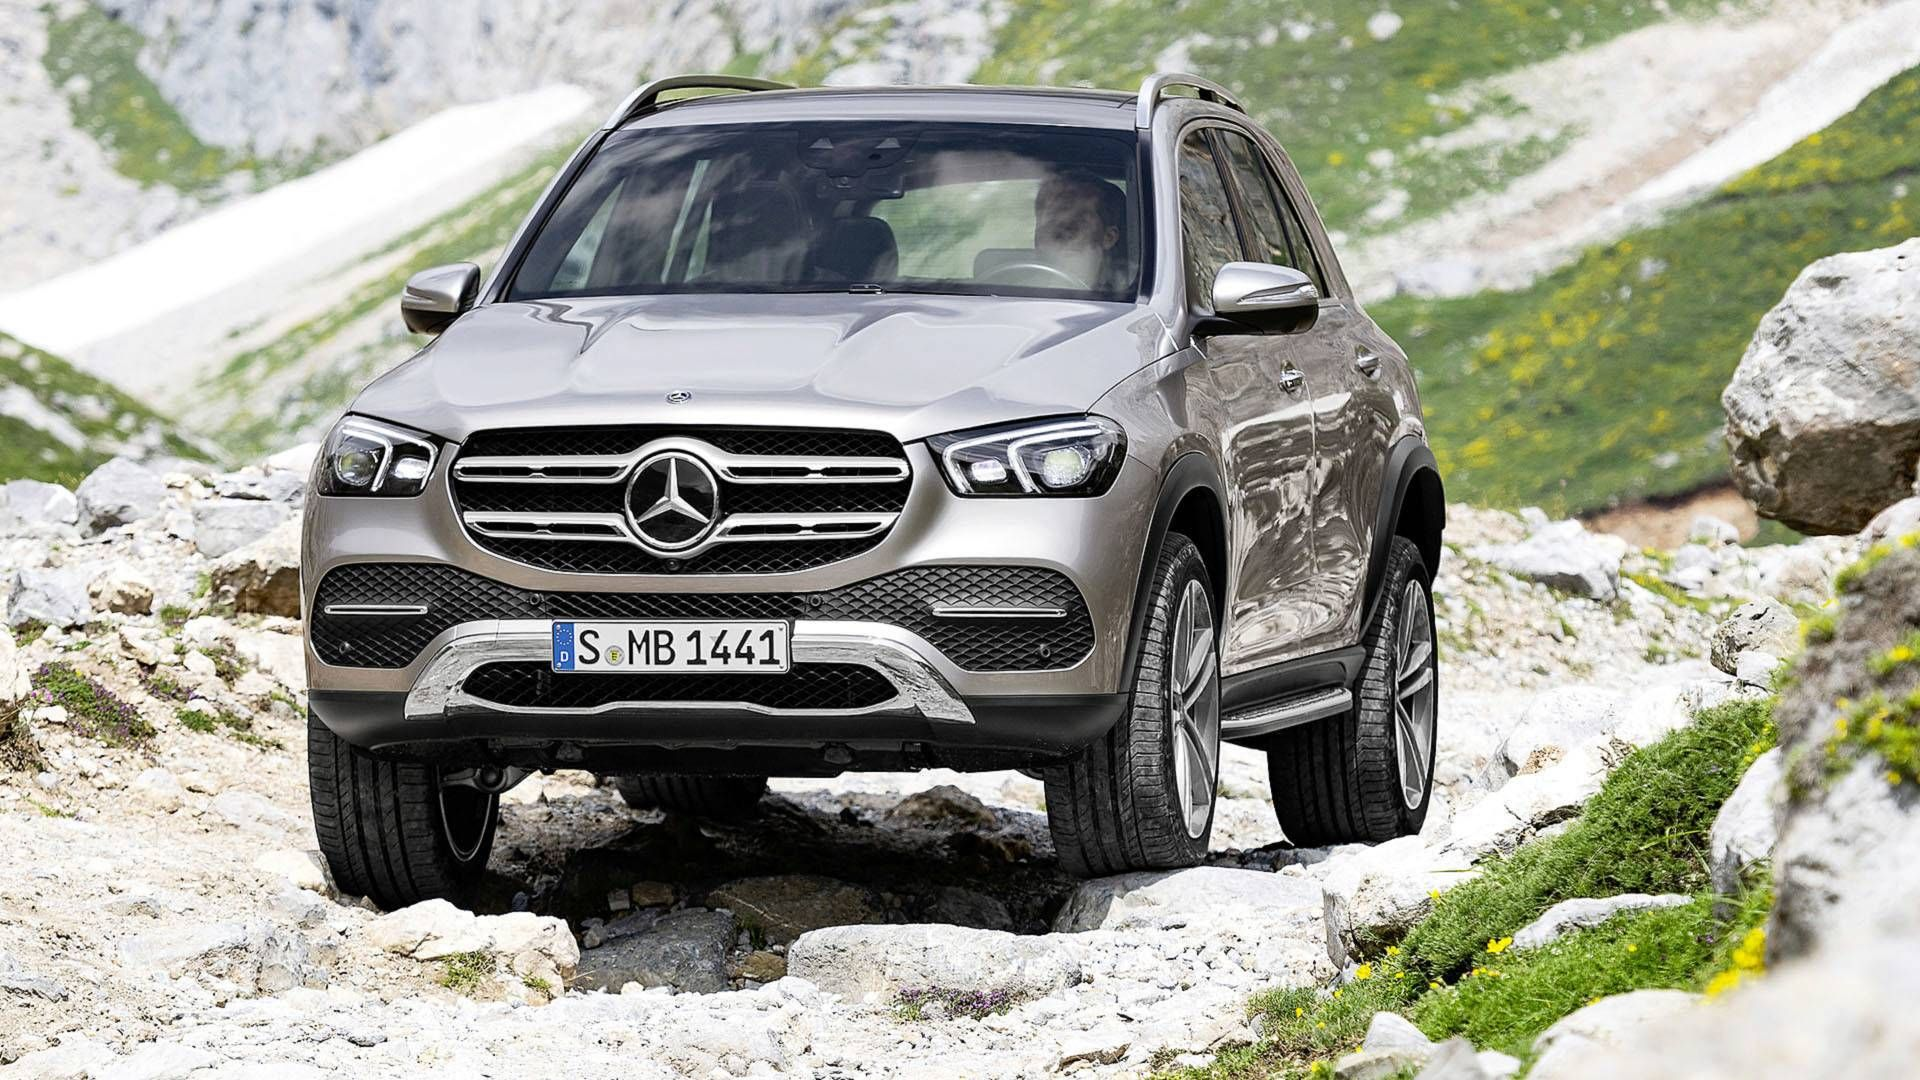 2019 Mercedes Benz Gle Revealed With Lots Of Tech With Images